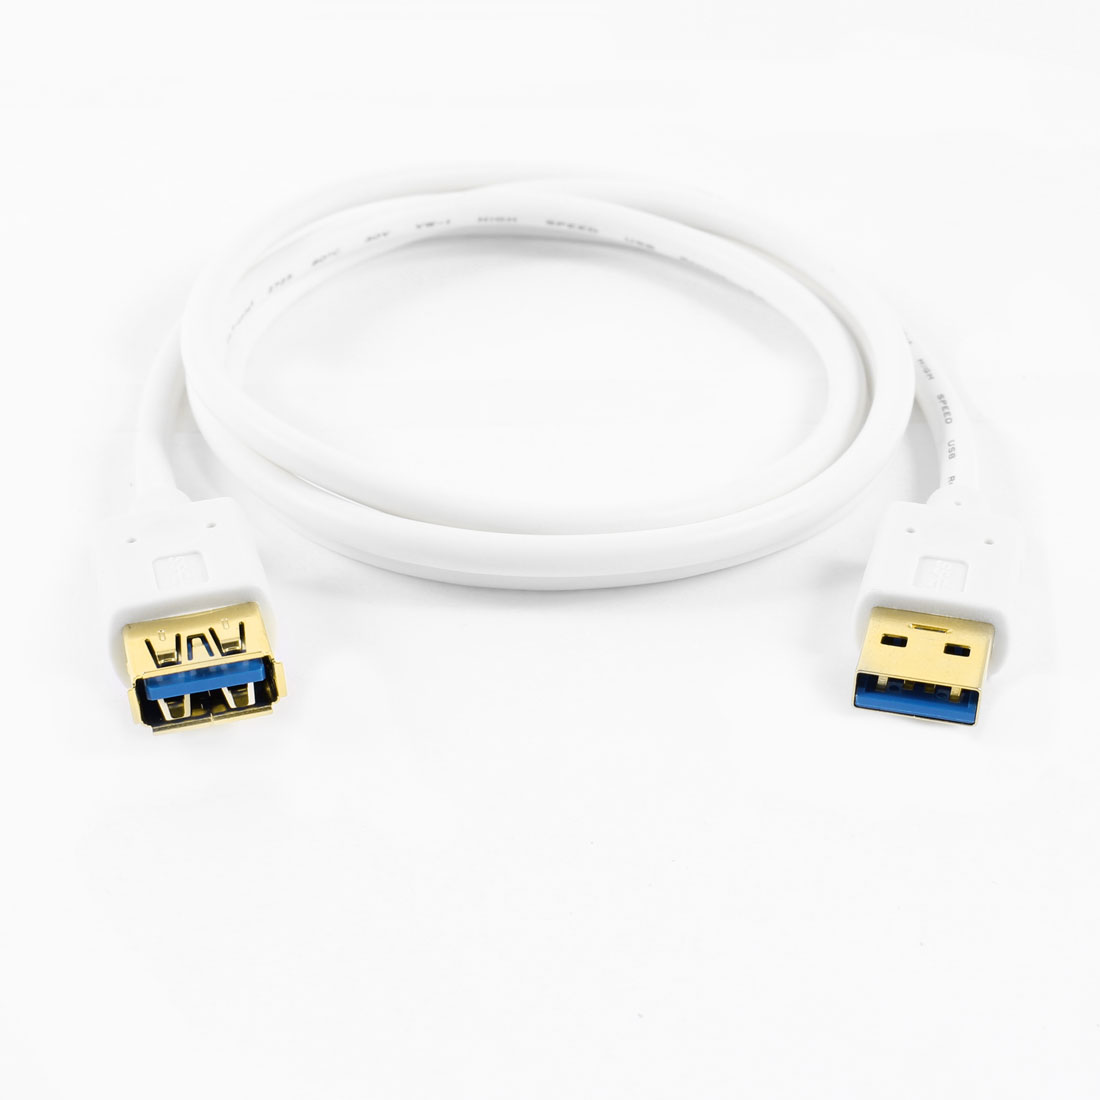 White Superspeed USB 3.0 Type A Male to Female Adapter Cable Cord